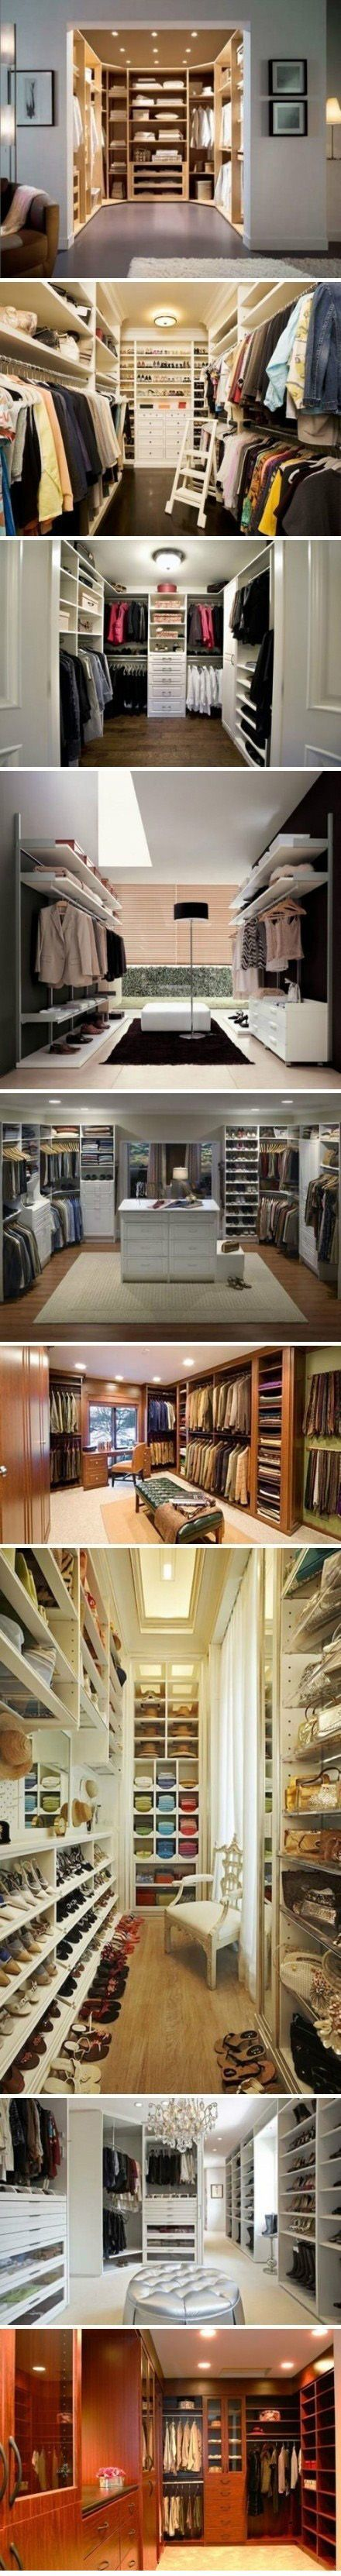 wish i had a closet like one of these